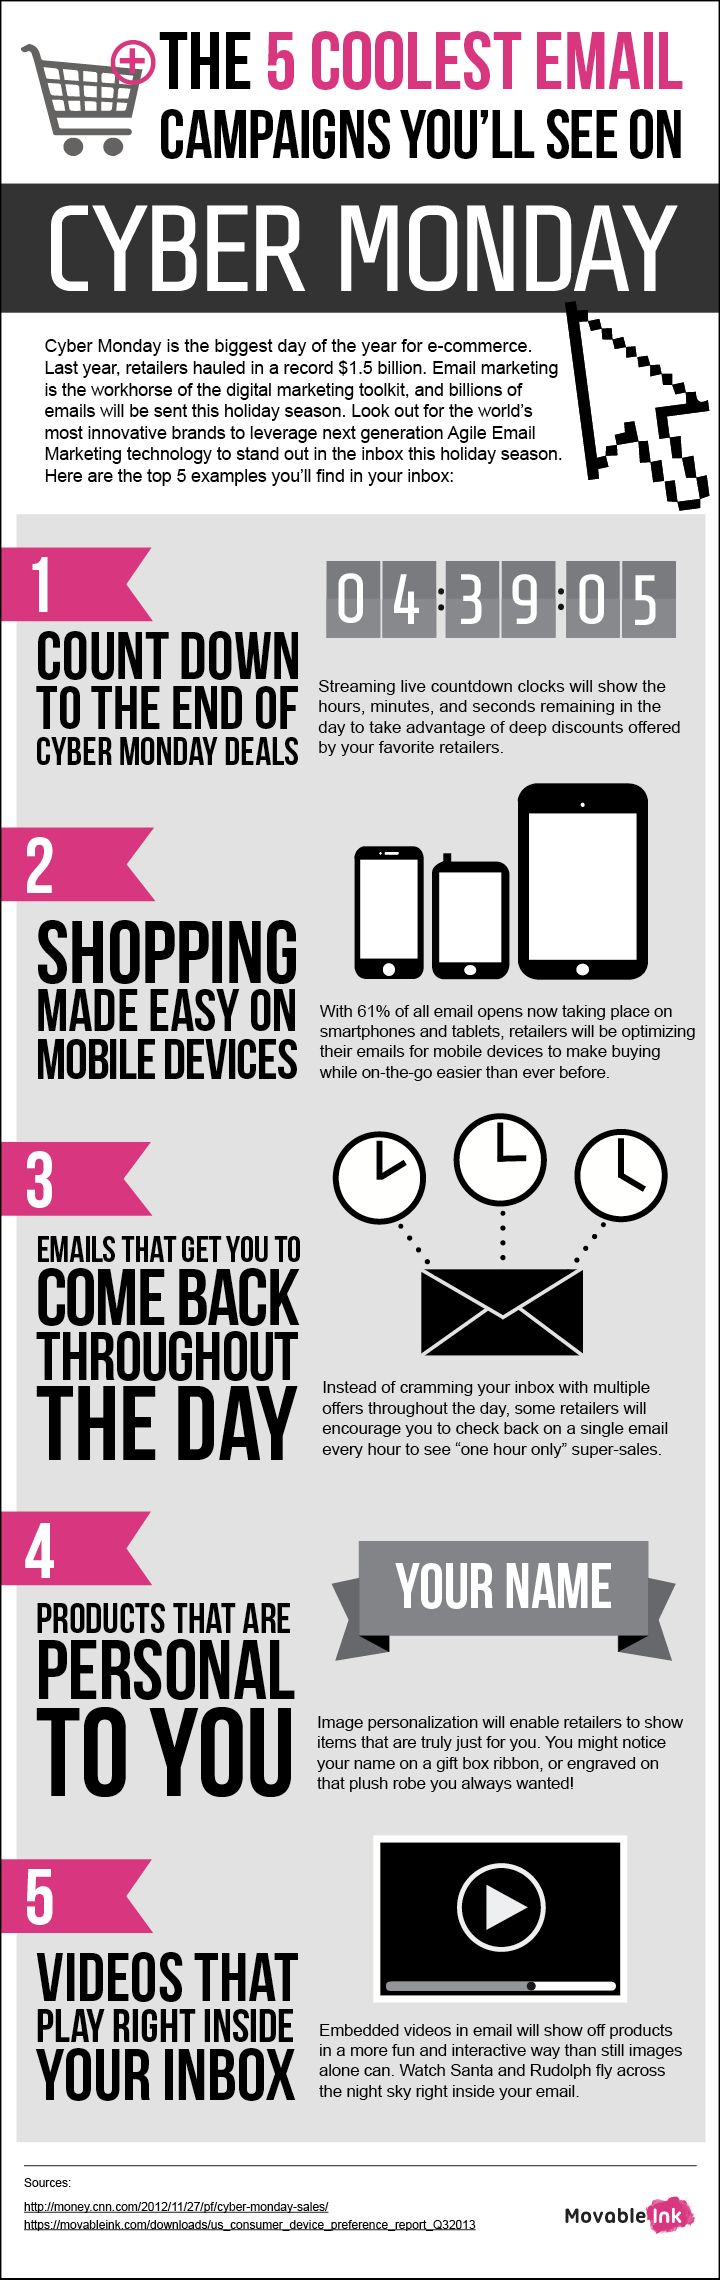 Movable Ink #Infographic Cyber Monday Campaigns